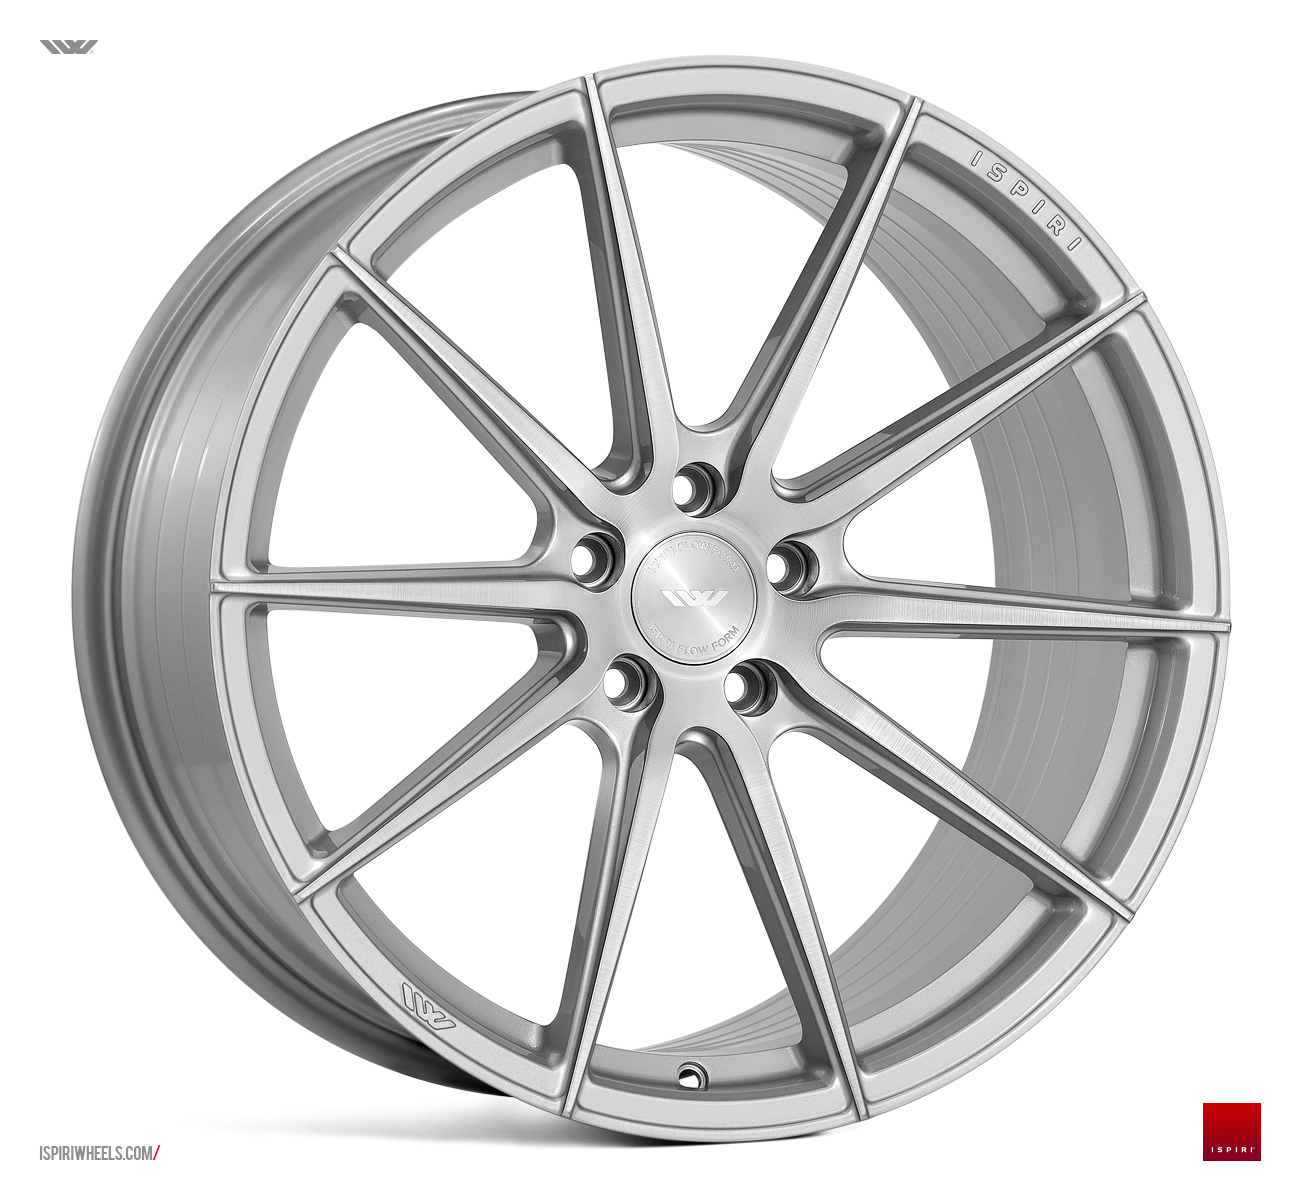 "NEW 20"" ISPIRI FFR1 MULTI-SPOKE ALLOY WHEELS IN PURE SILVER WITH BRUSHED POLISH FACE, DEEPER CONCAVE 10"" or 10.5"" REARS"